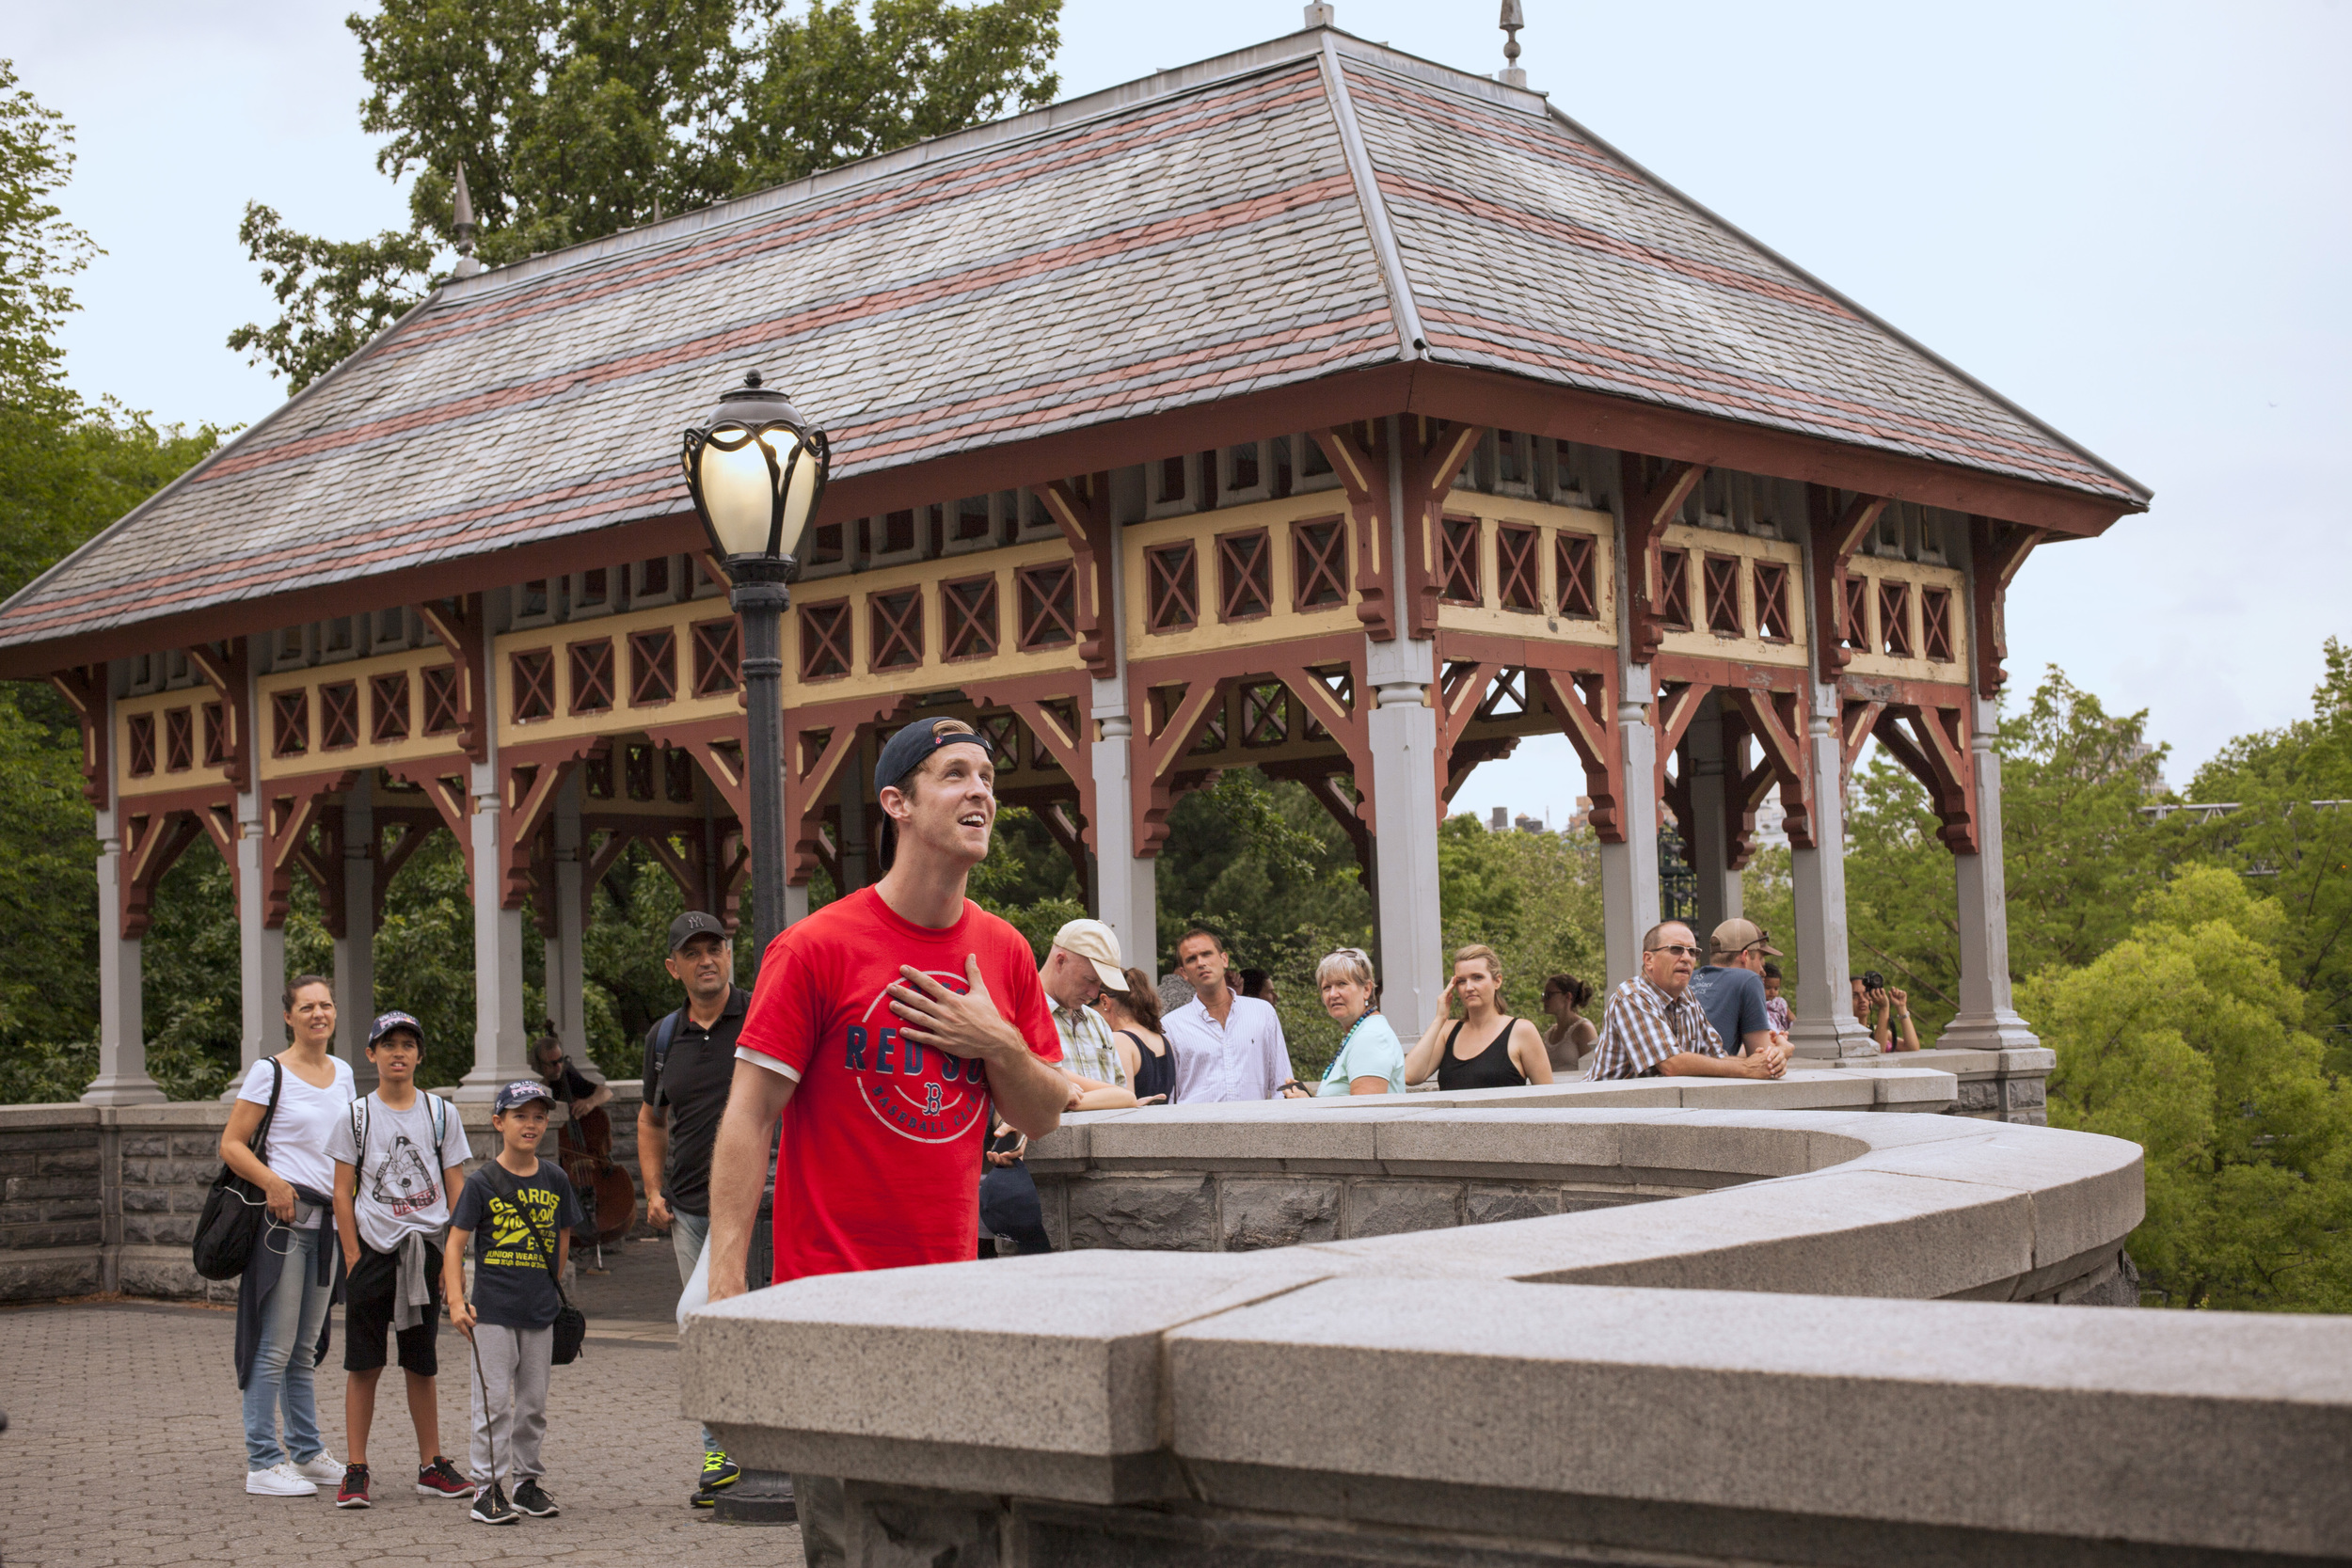 Keith as Romeo in pop-up  Romeo & Juliet , professing his love to Juliet at Central Park's Belvedere Castle (June 2016)